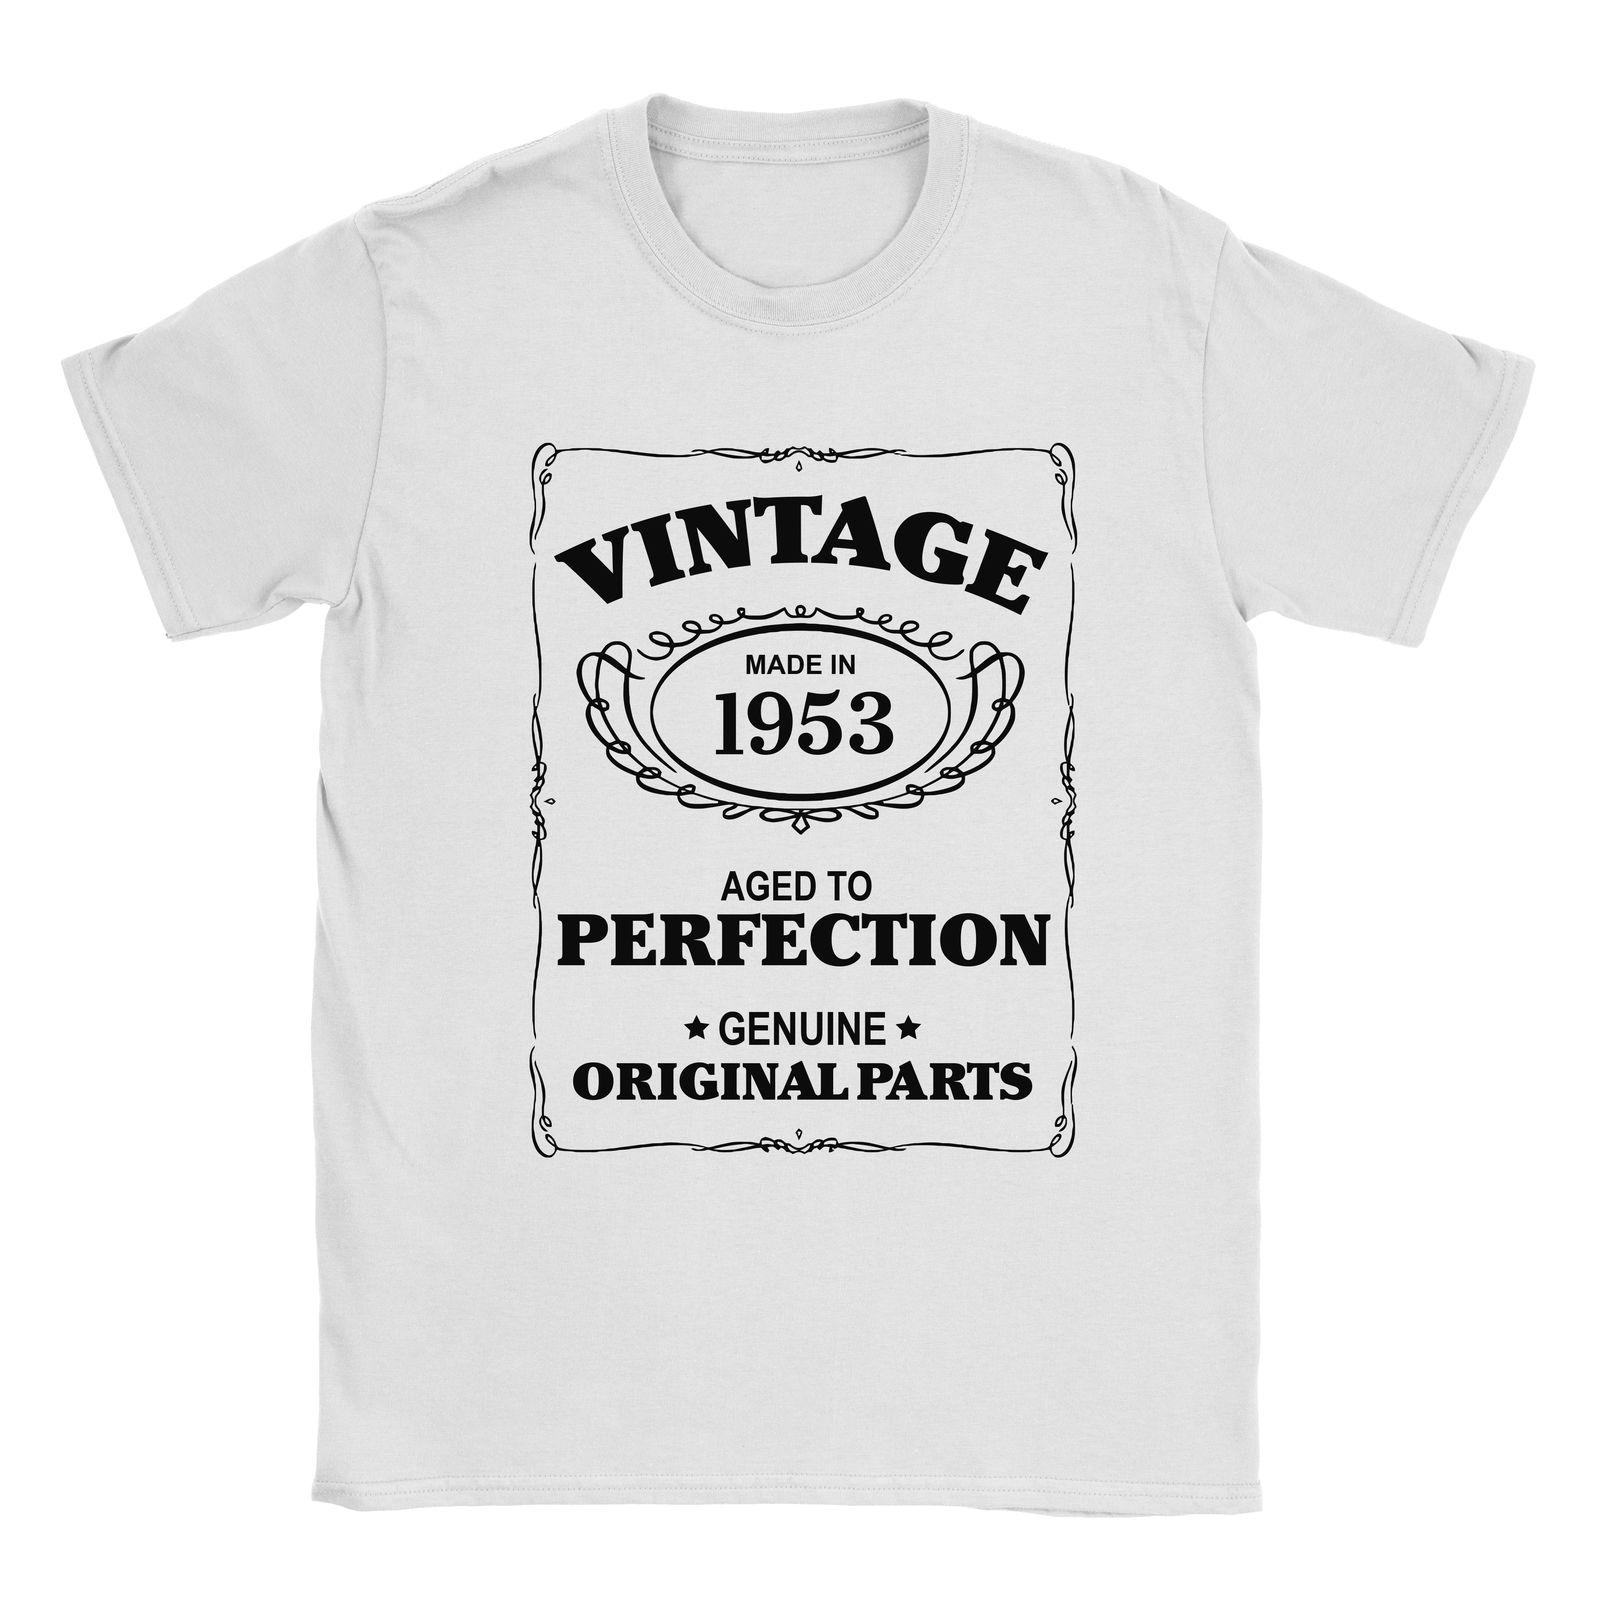 65th Birthday T Shirt Born In 1953 Mens Present Gift Age Aged To Perfection Cool Casual Pride Men Unisex New Fashion Tshirt Clothes Crazy